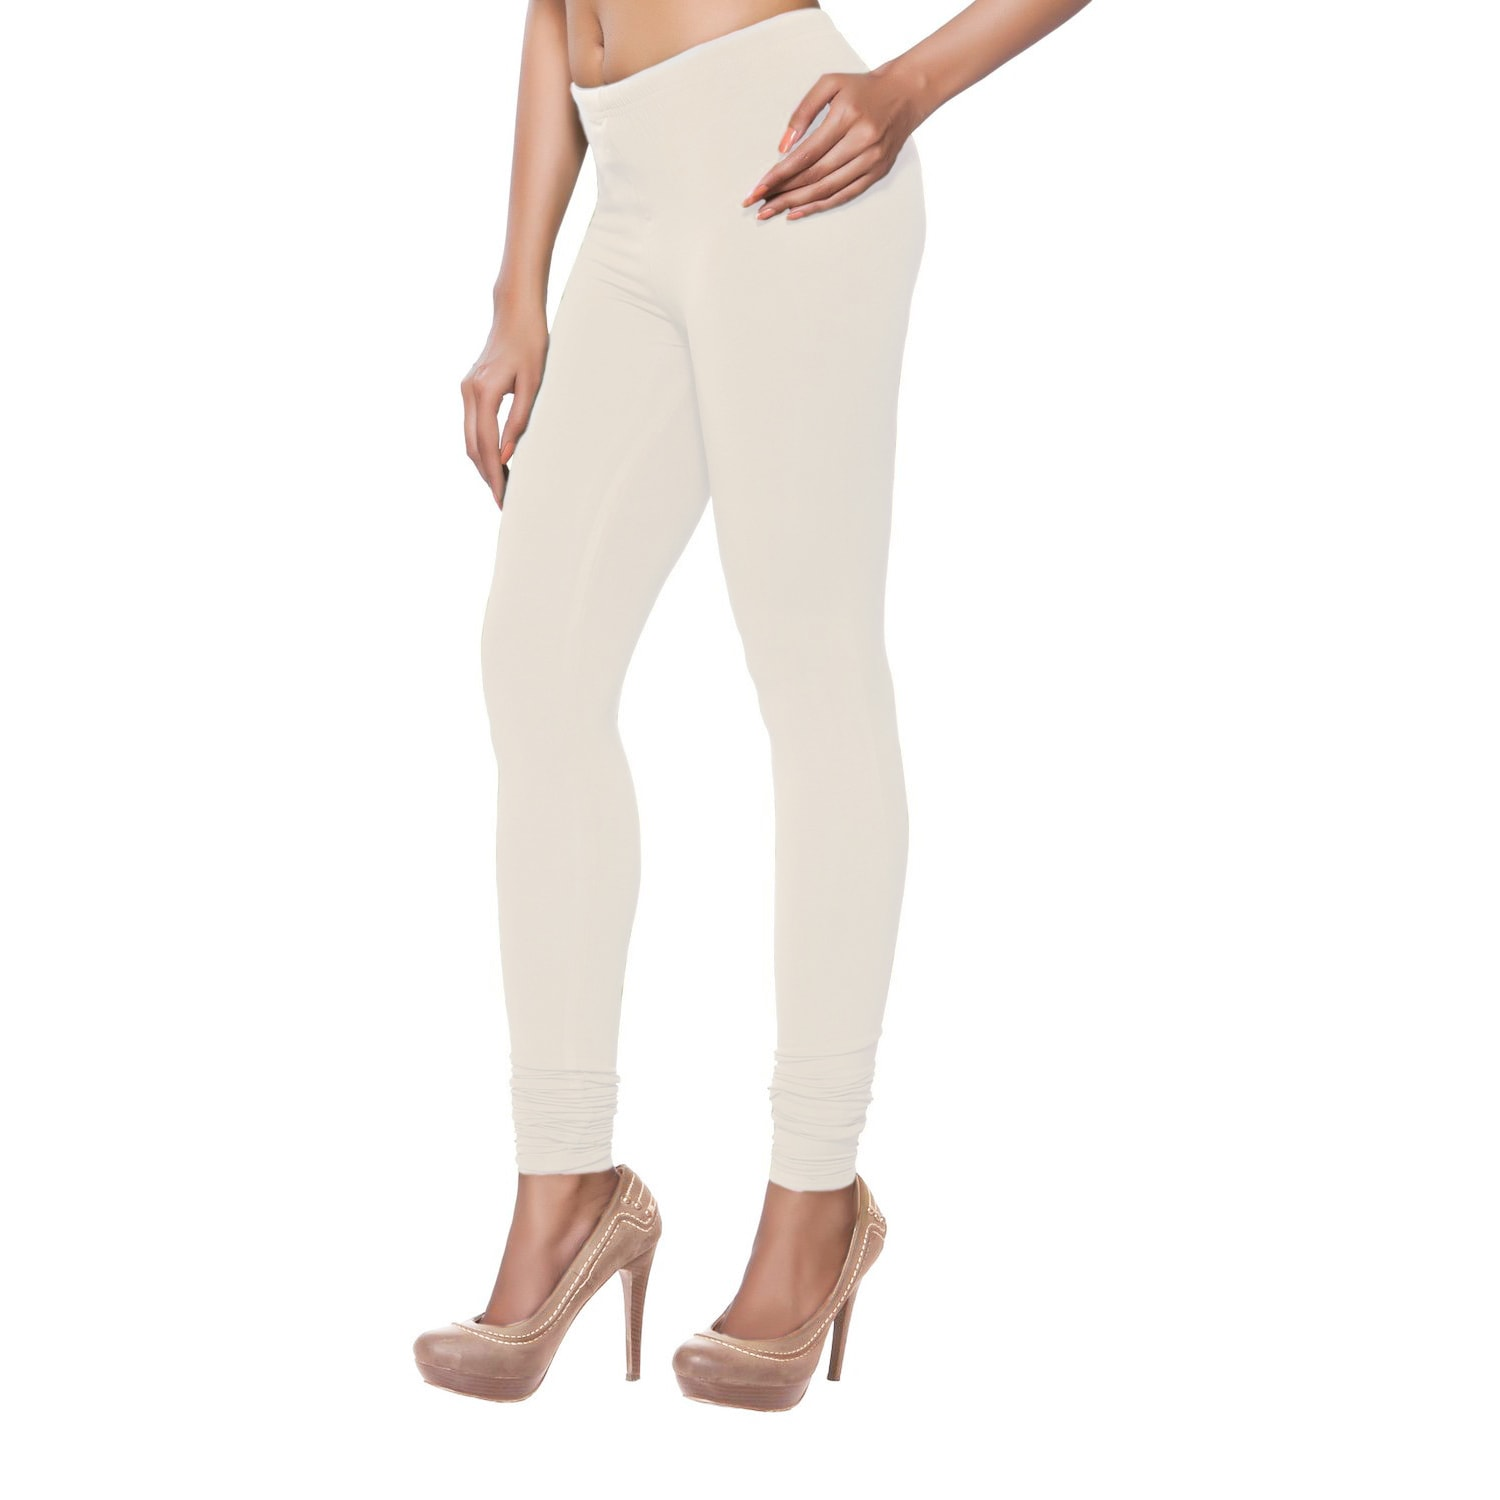 In-Sattva Women's Off-white (Beige) Solid Color Leggings ...